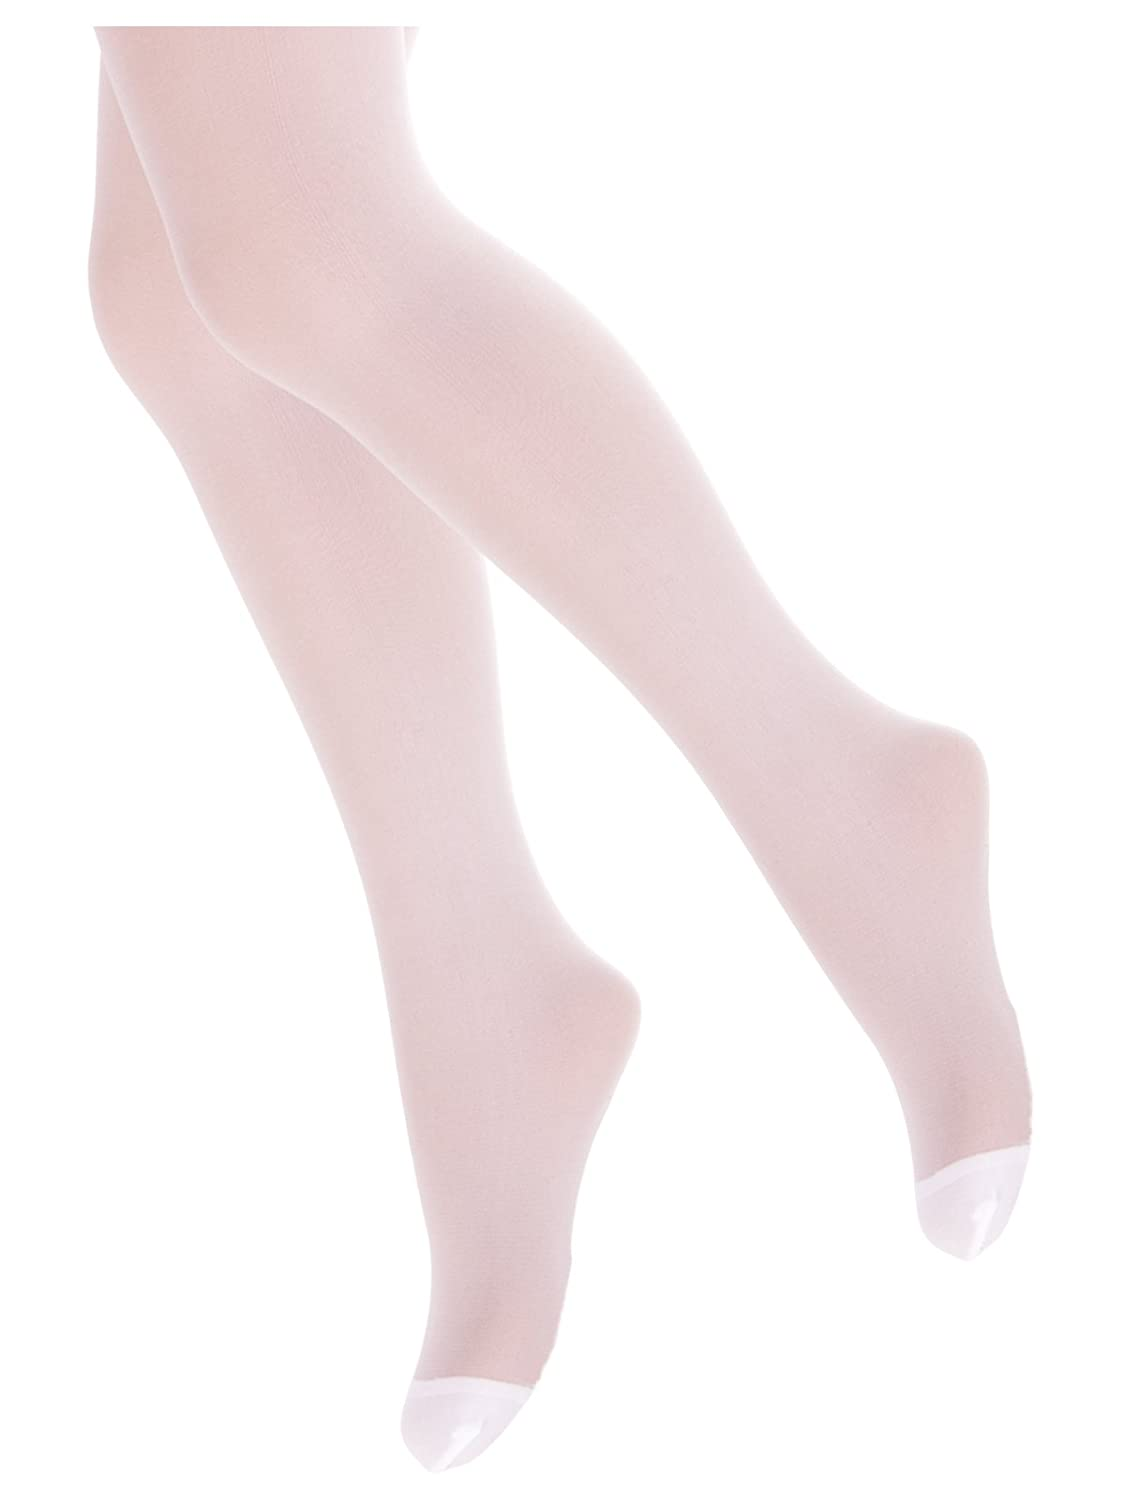 TLLC Girls Plain Sheer 20 Denier Tights For Special Occasions